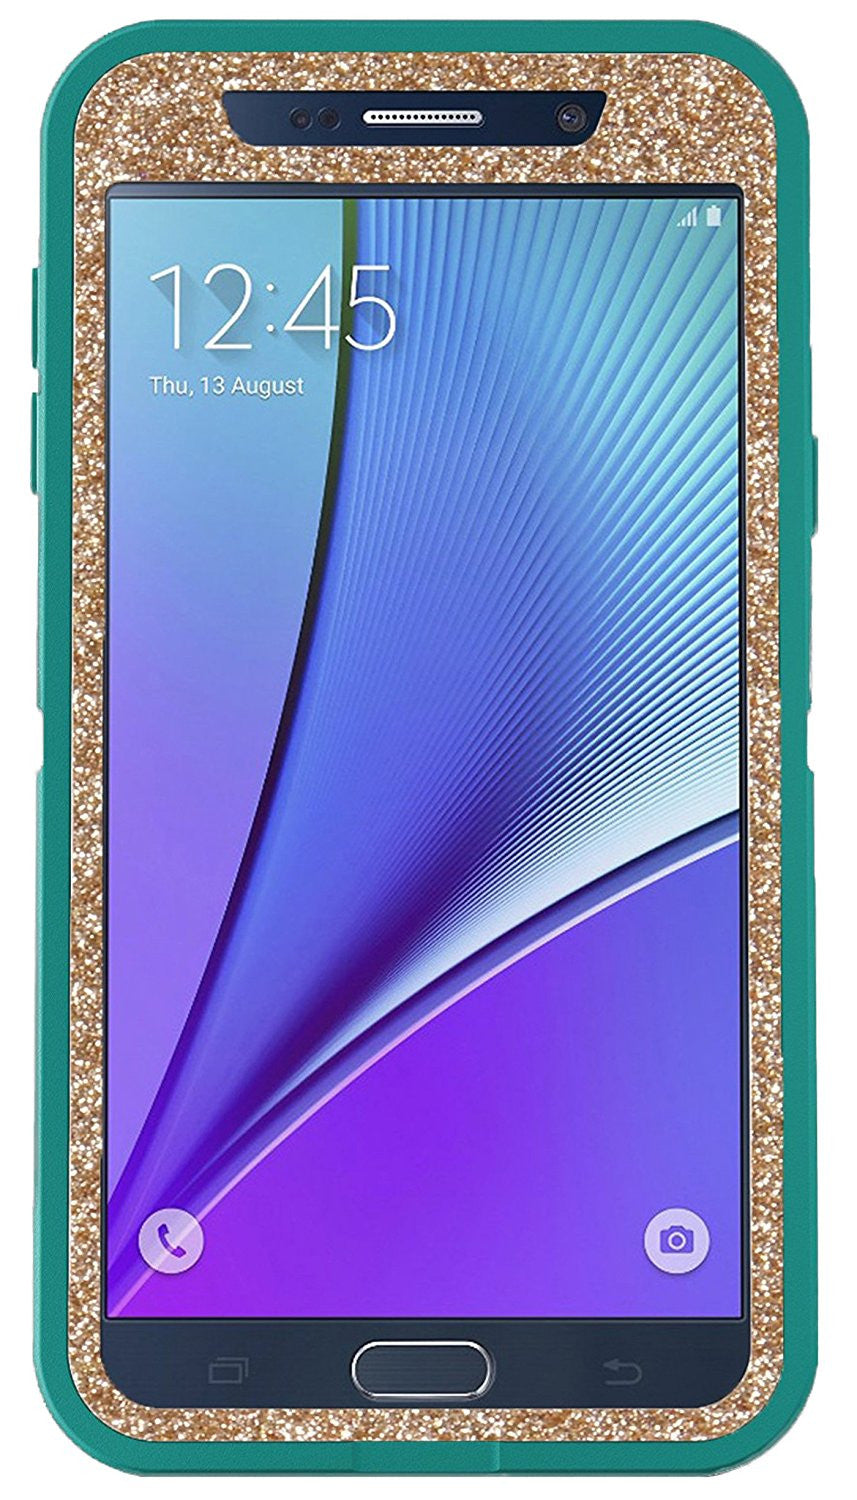 new concept 2b83d 03a84 OtterBox Samsung Galaxy Note 5 Custom Glitter Case Defender Series - Retail  Packaging - Teal/Gold